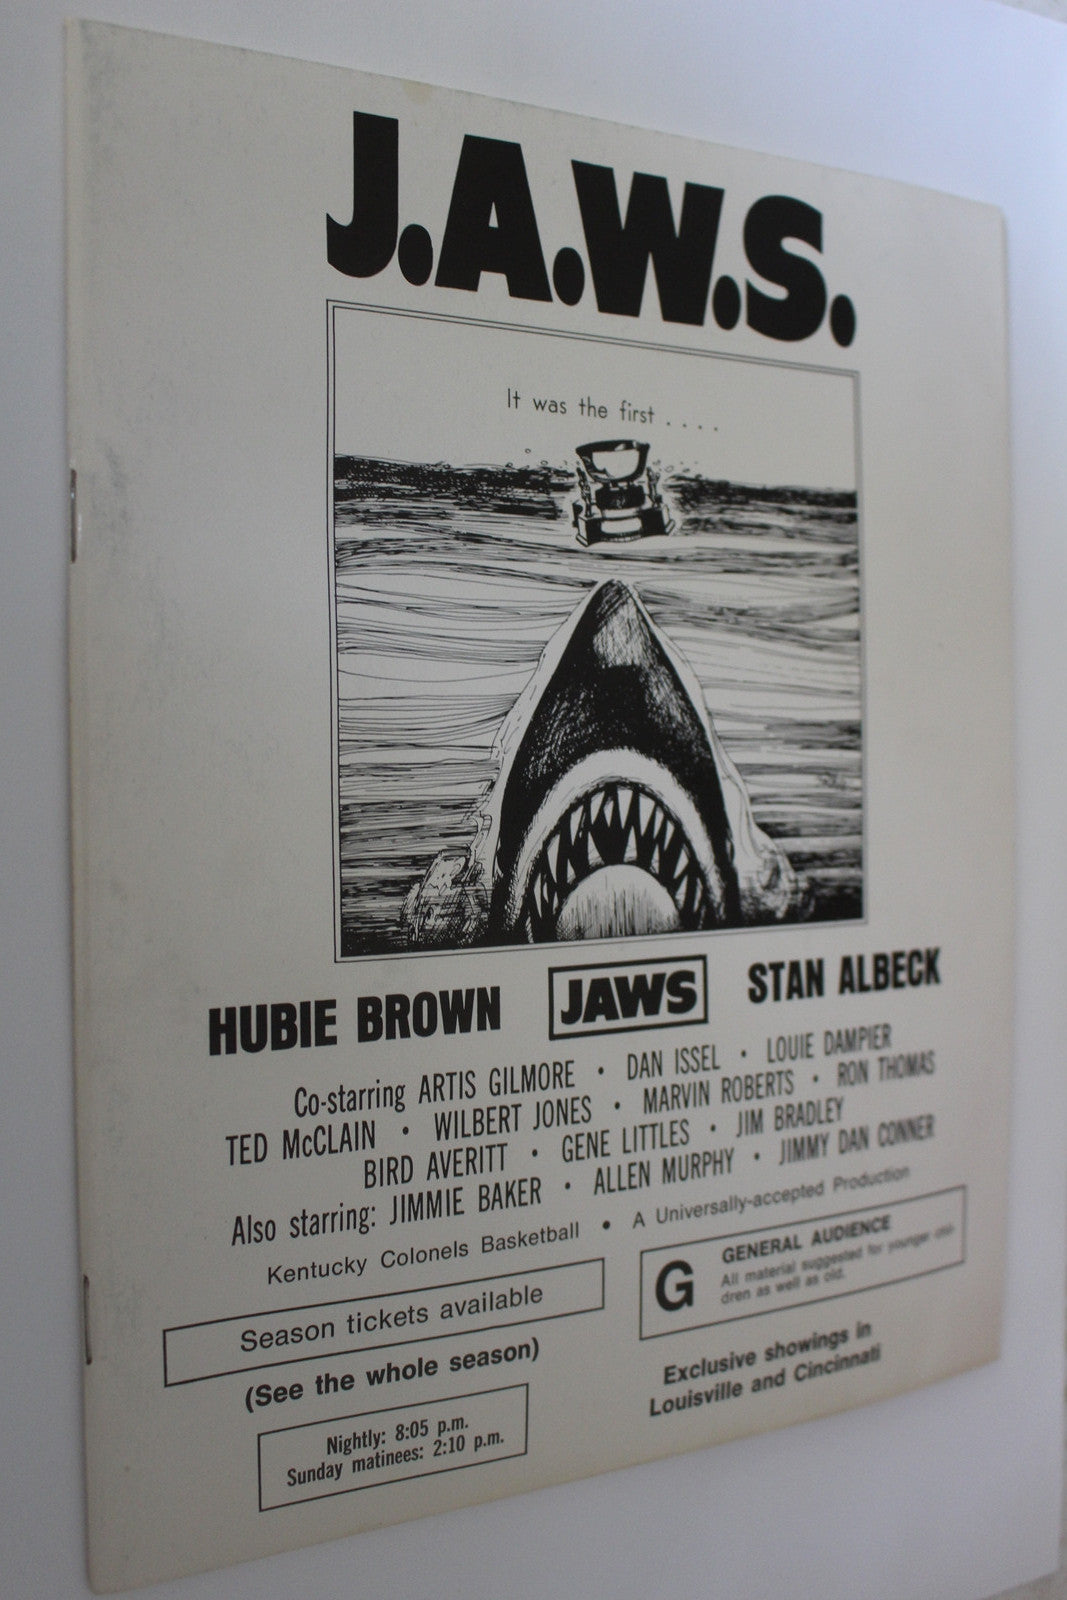 1975-76 Kentucky Colonels ABA Basketball Media Guide, JAWS Theme - Vintage Indy Sports